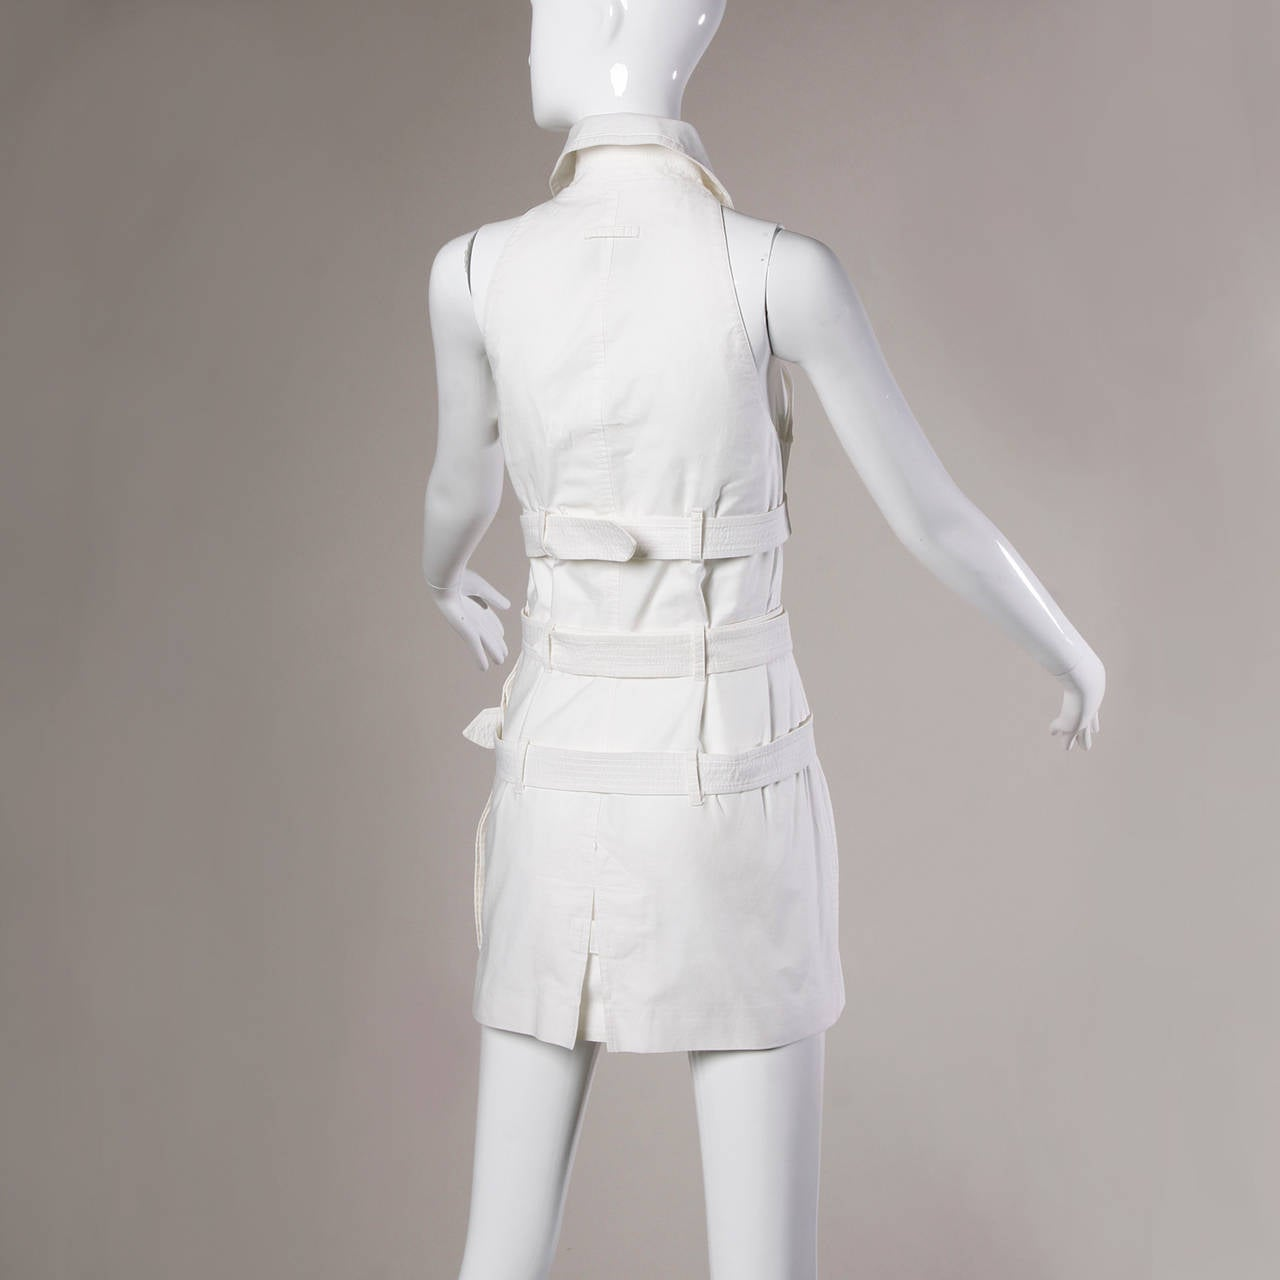 Jean Paul Gaultier Iconic Vintage Straitjacket Belted Bondage Dress For Sale 3